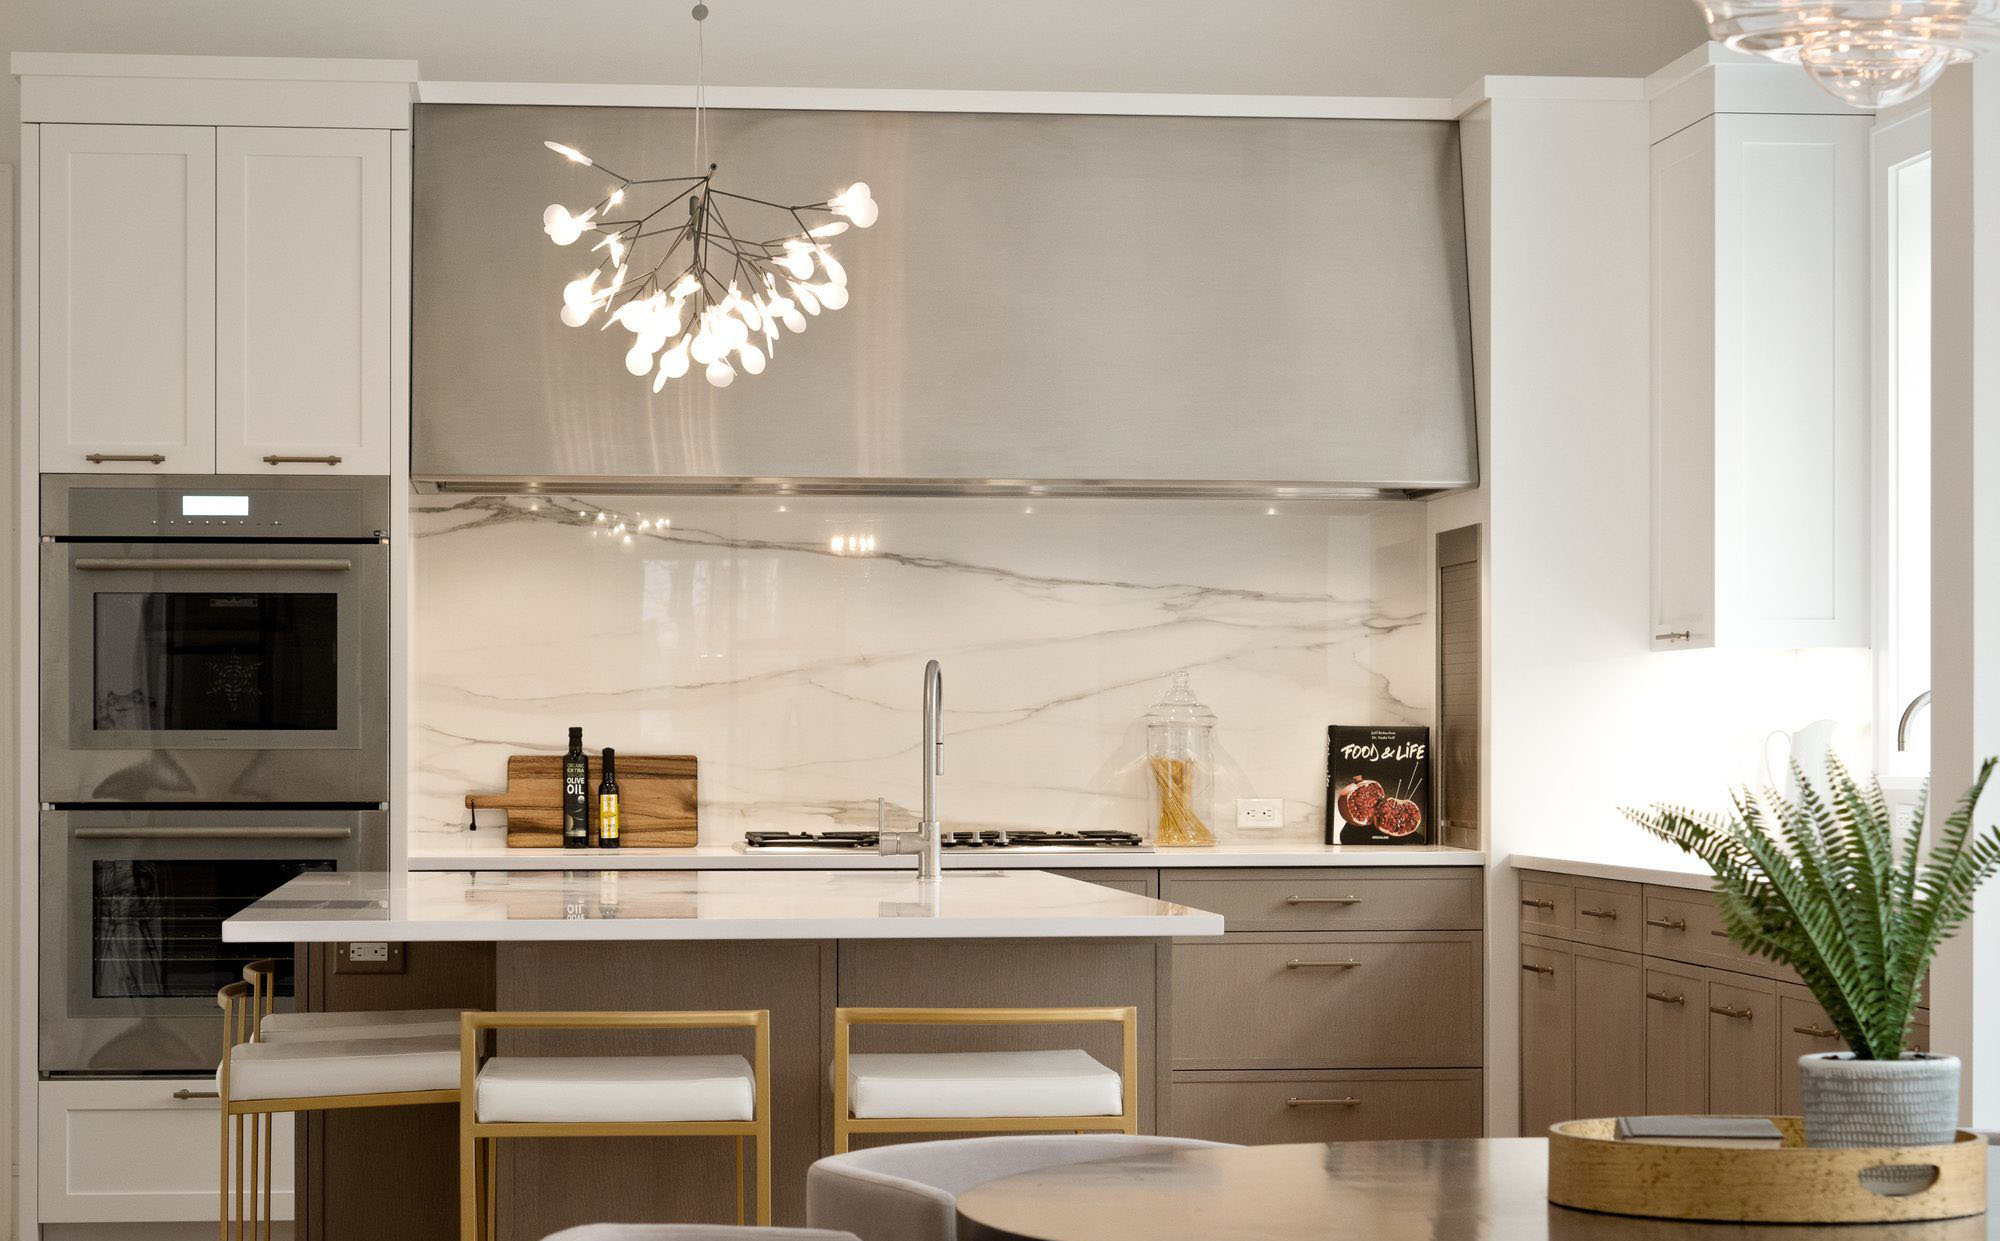 Beautiful Modern style kitchen with a built in stainless steel convection oven. what's a convection oiven.